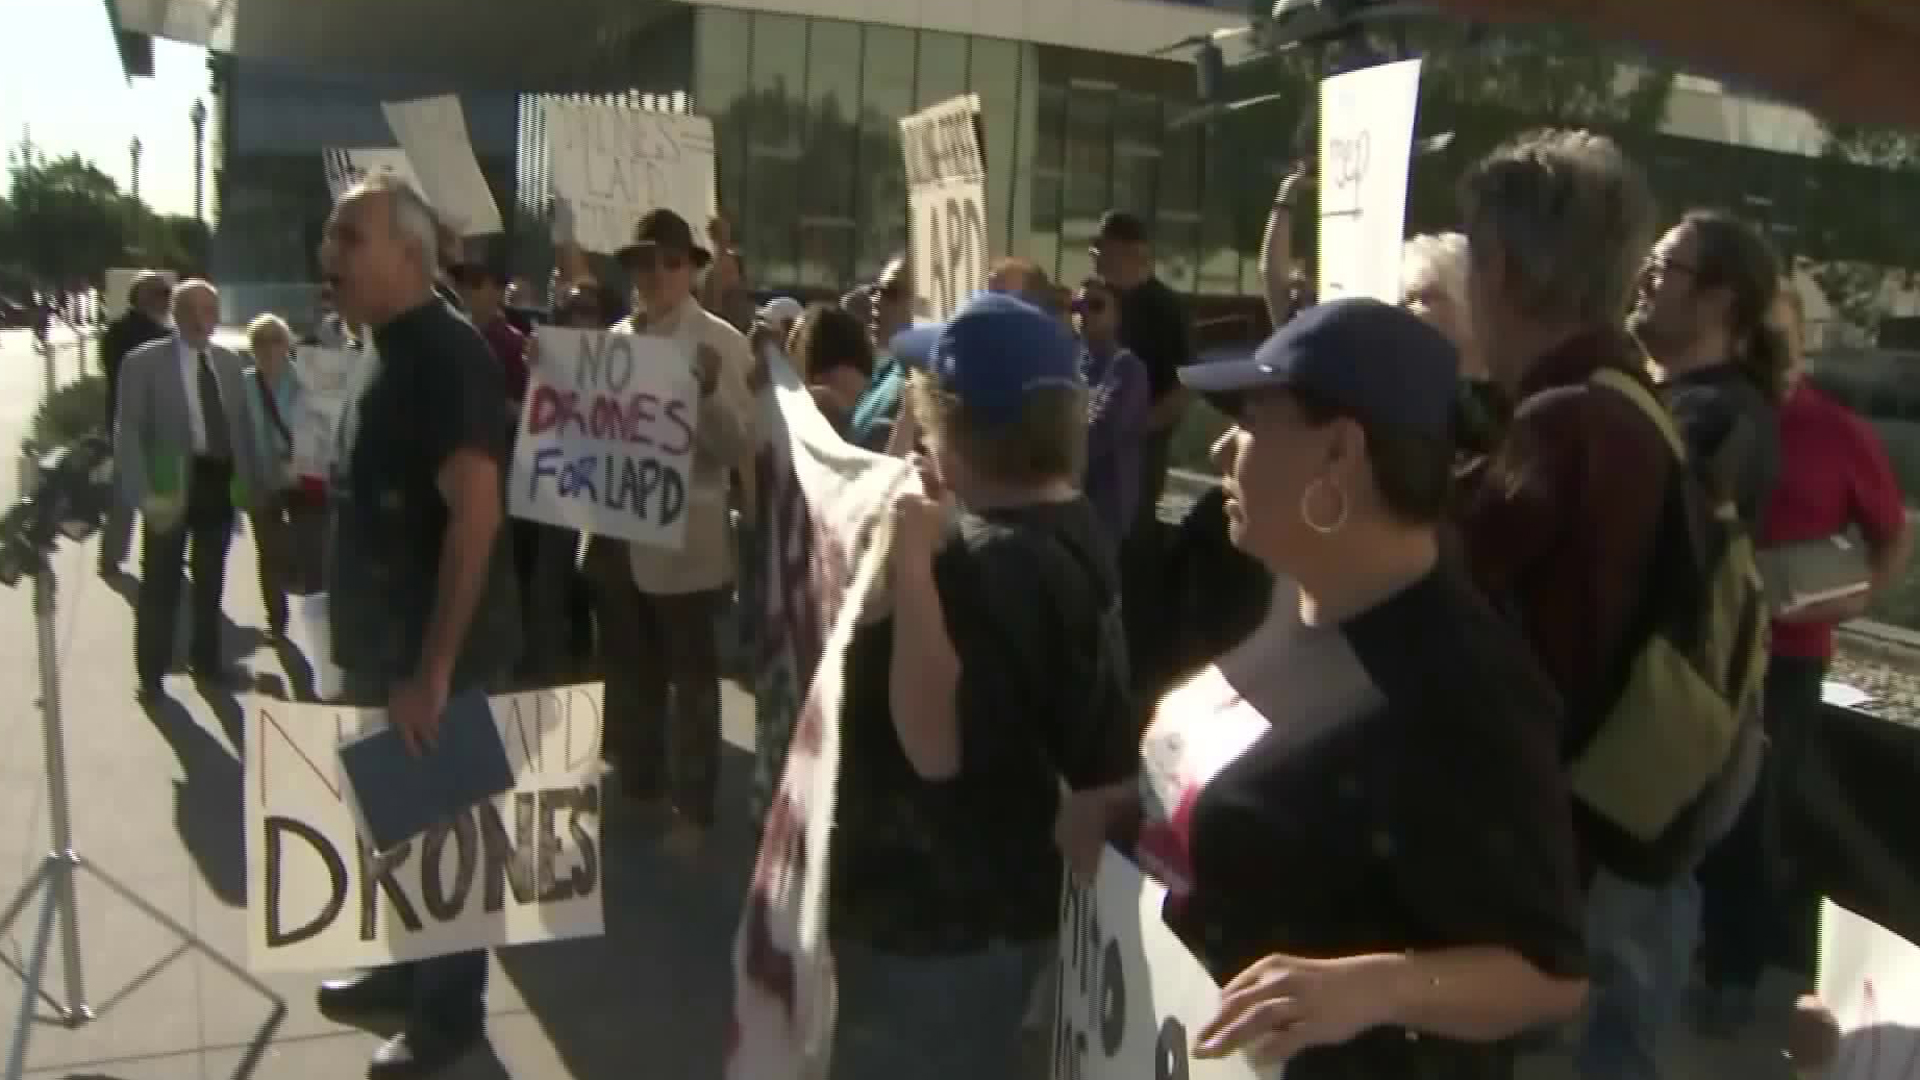 Protestors rally outside a meeting about the Los Angeles Police Department's use of drones on Feb. 7, 2018. (Credit: KTLA)